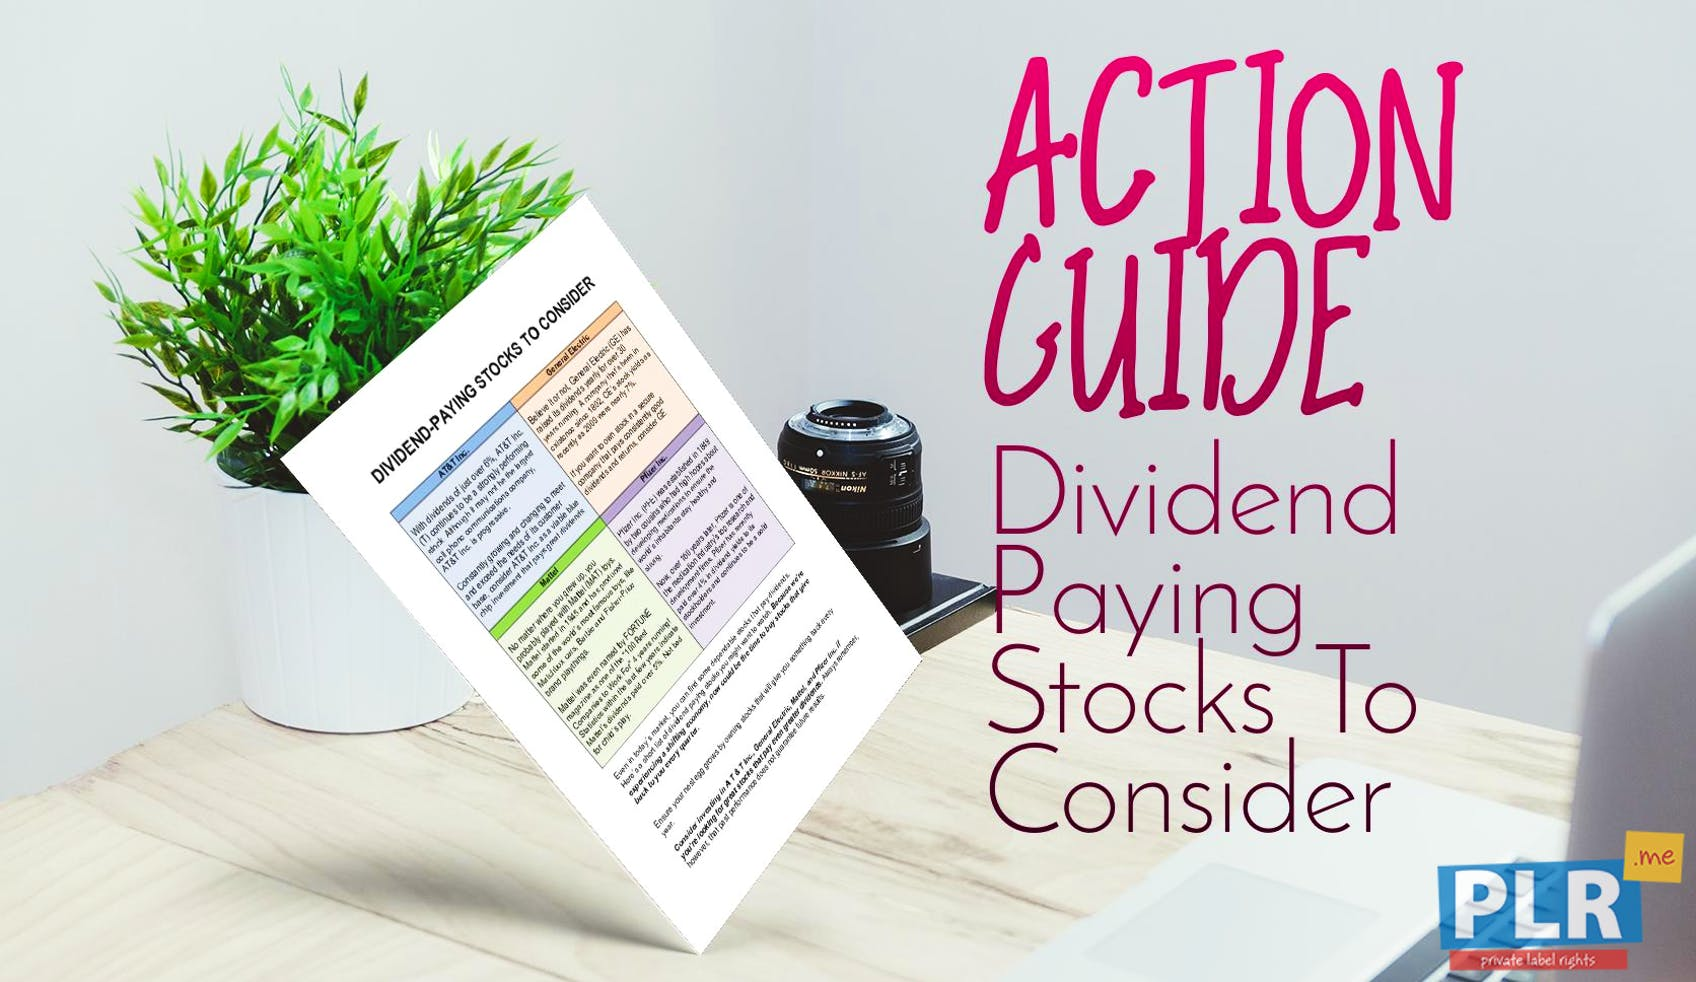 Dividend Paying Stocks To Consider